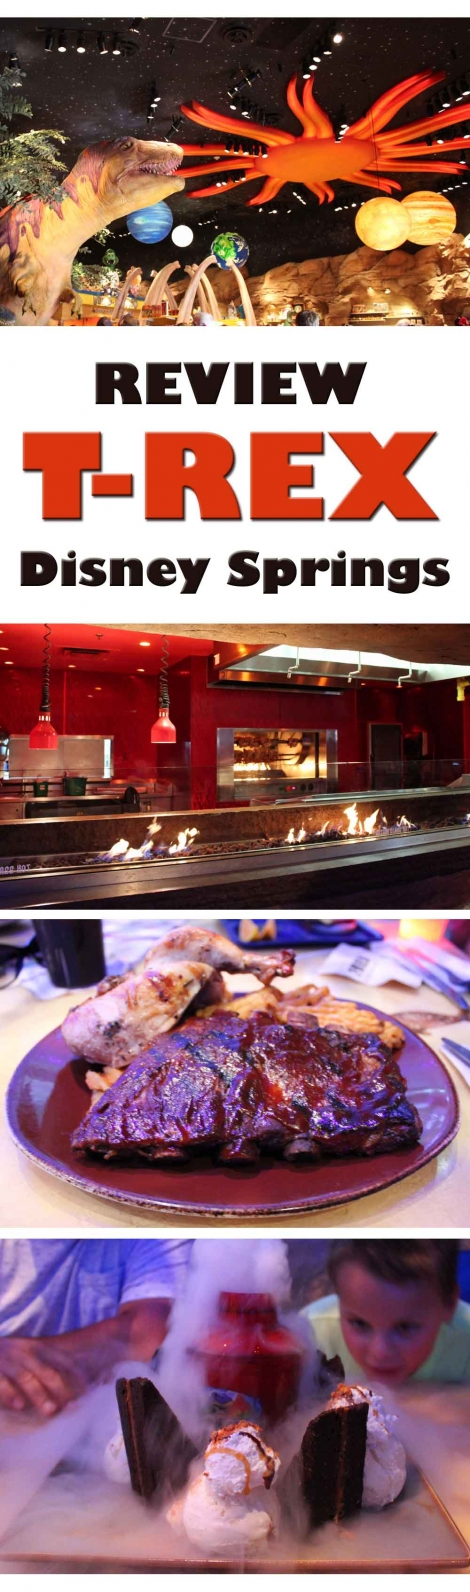 TREX-Food-Photos-Restaurant-Review-Disney-Springs-(pin)